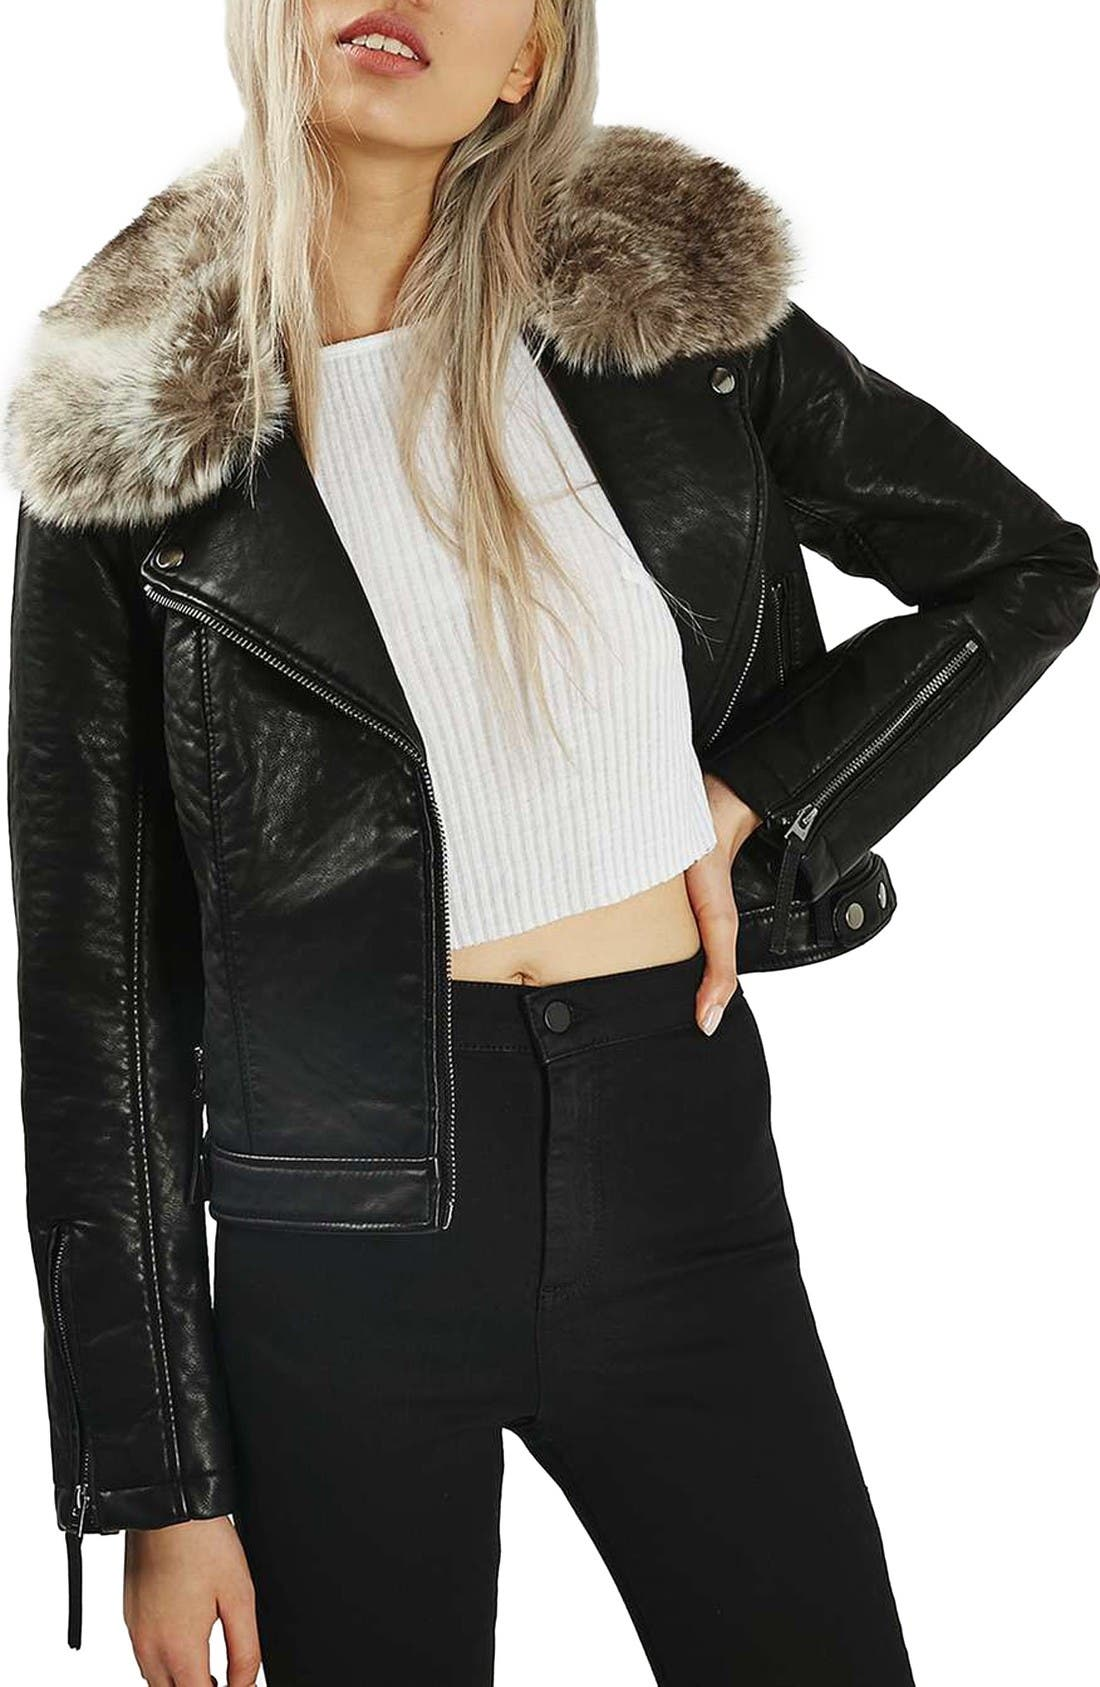 Alternate Image 1 Selected - Topshop 'Honey' Faux Fur Collar Faux Leather Moto Jacket